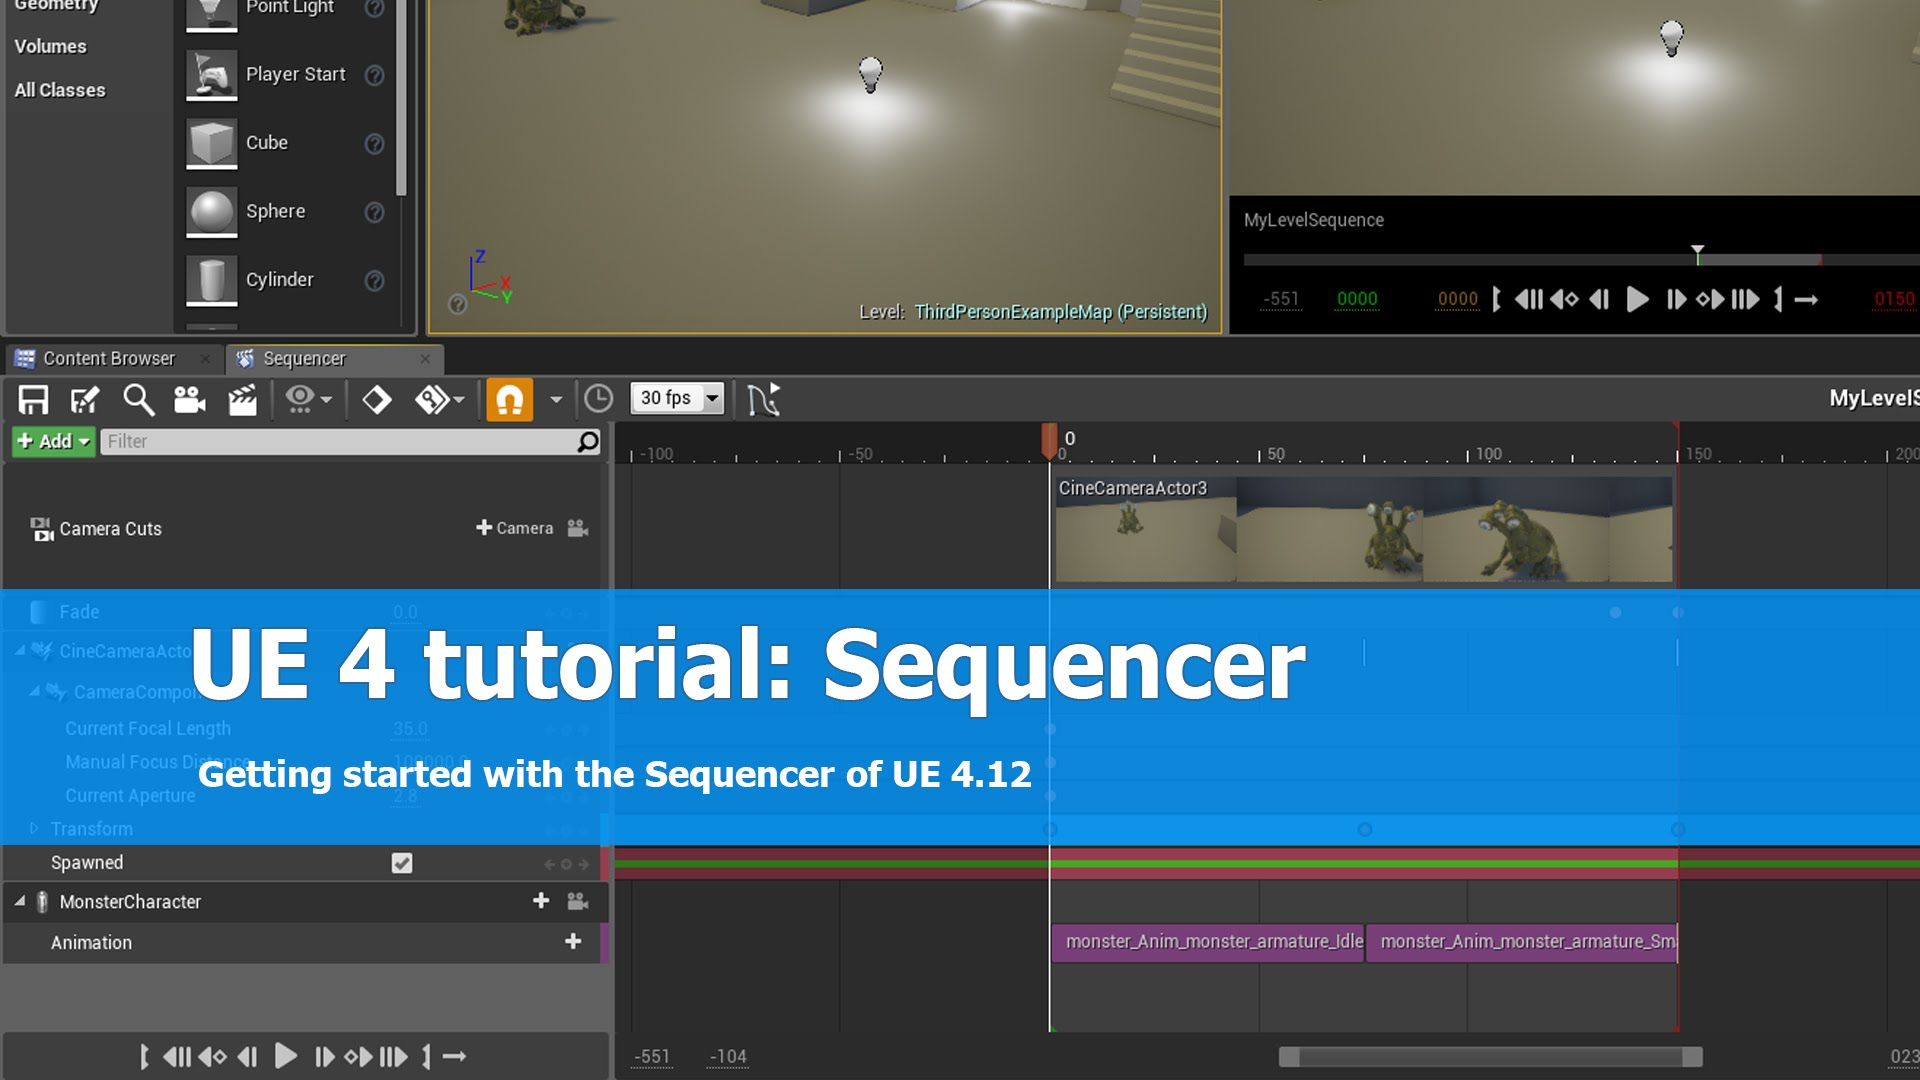 Unreal Engine 4 Sequencer Tutorials | JayAnAm - Gamedev